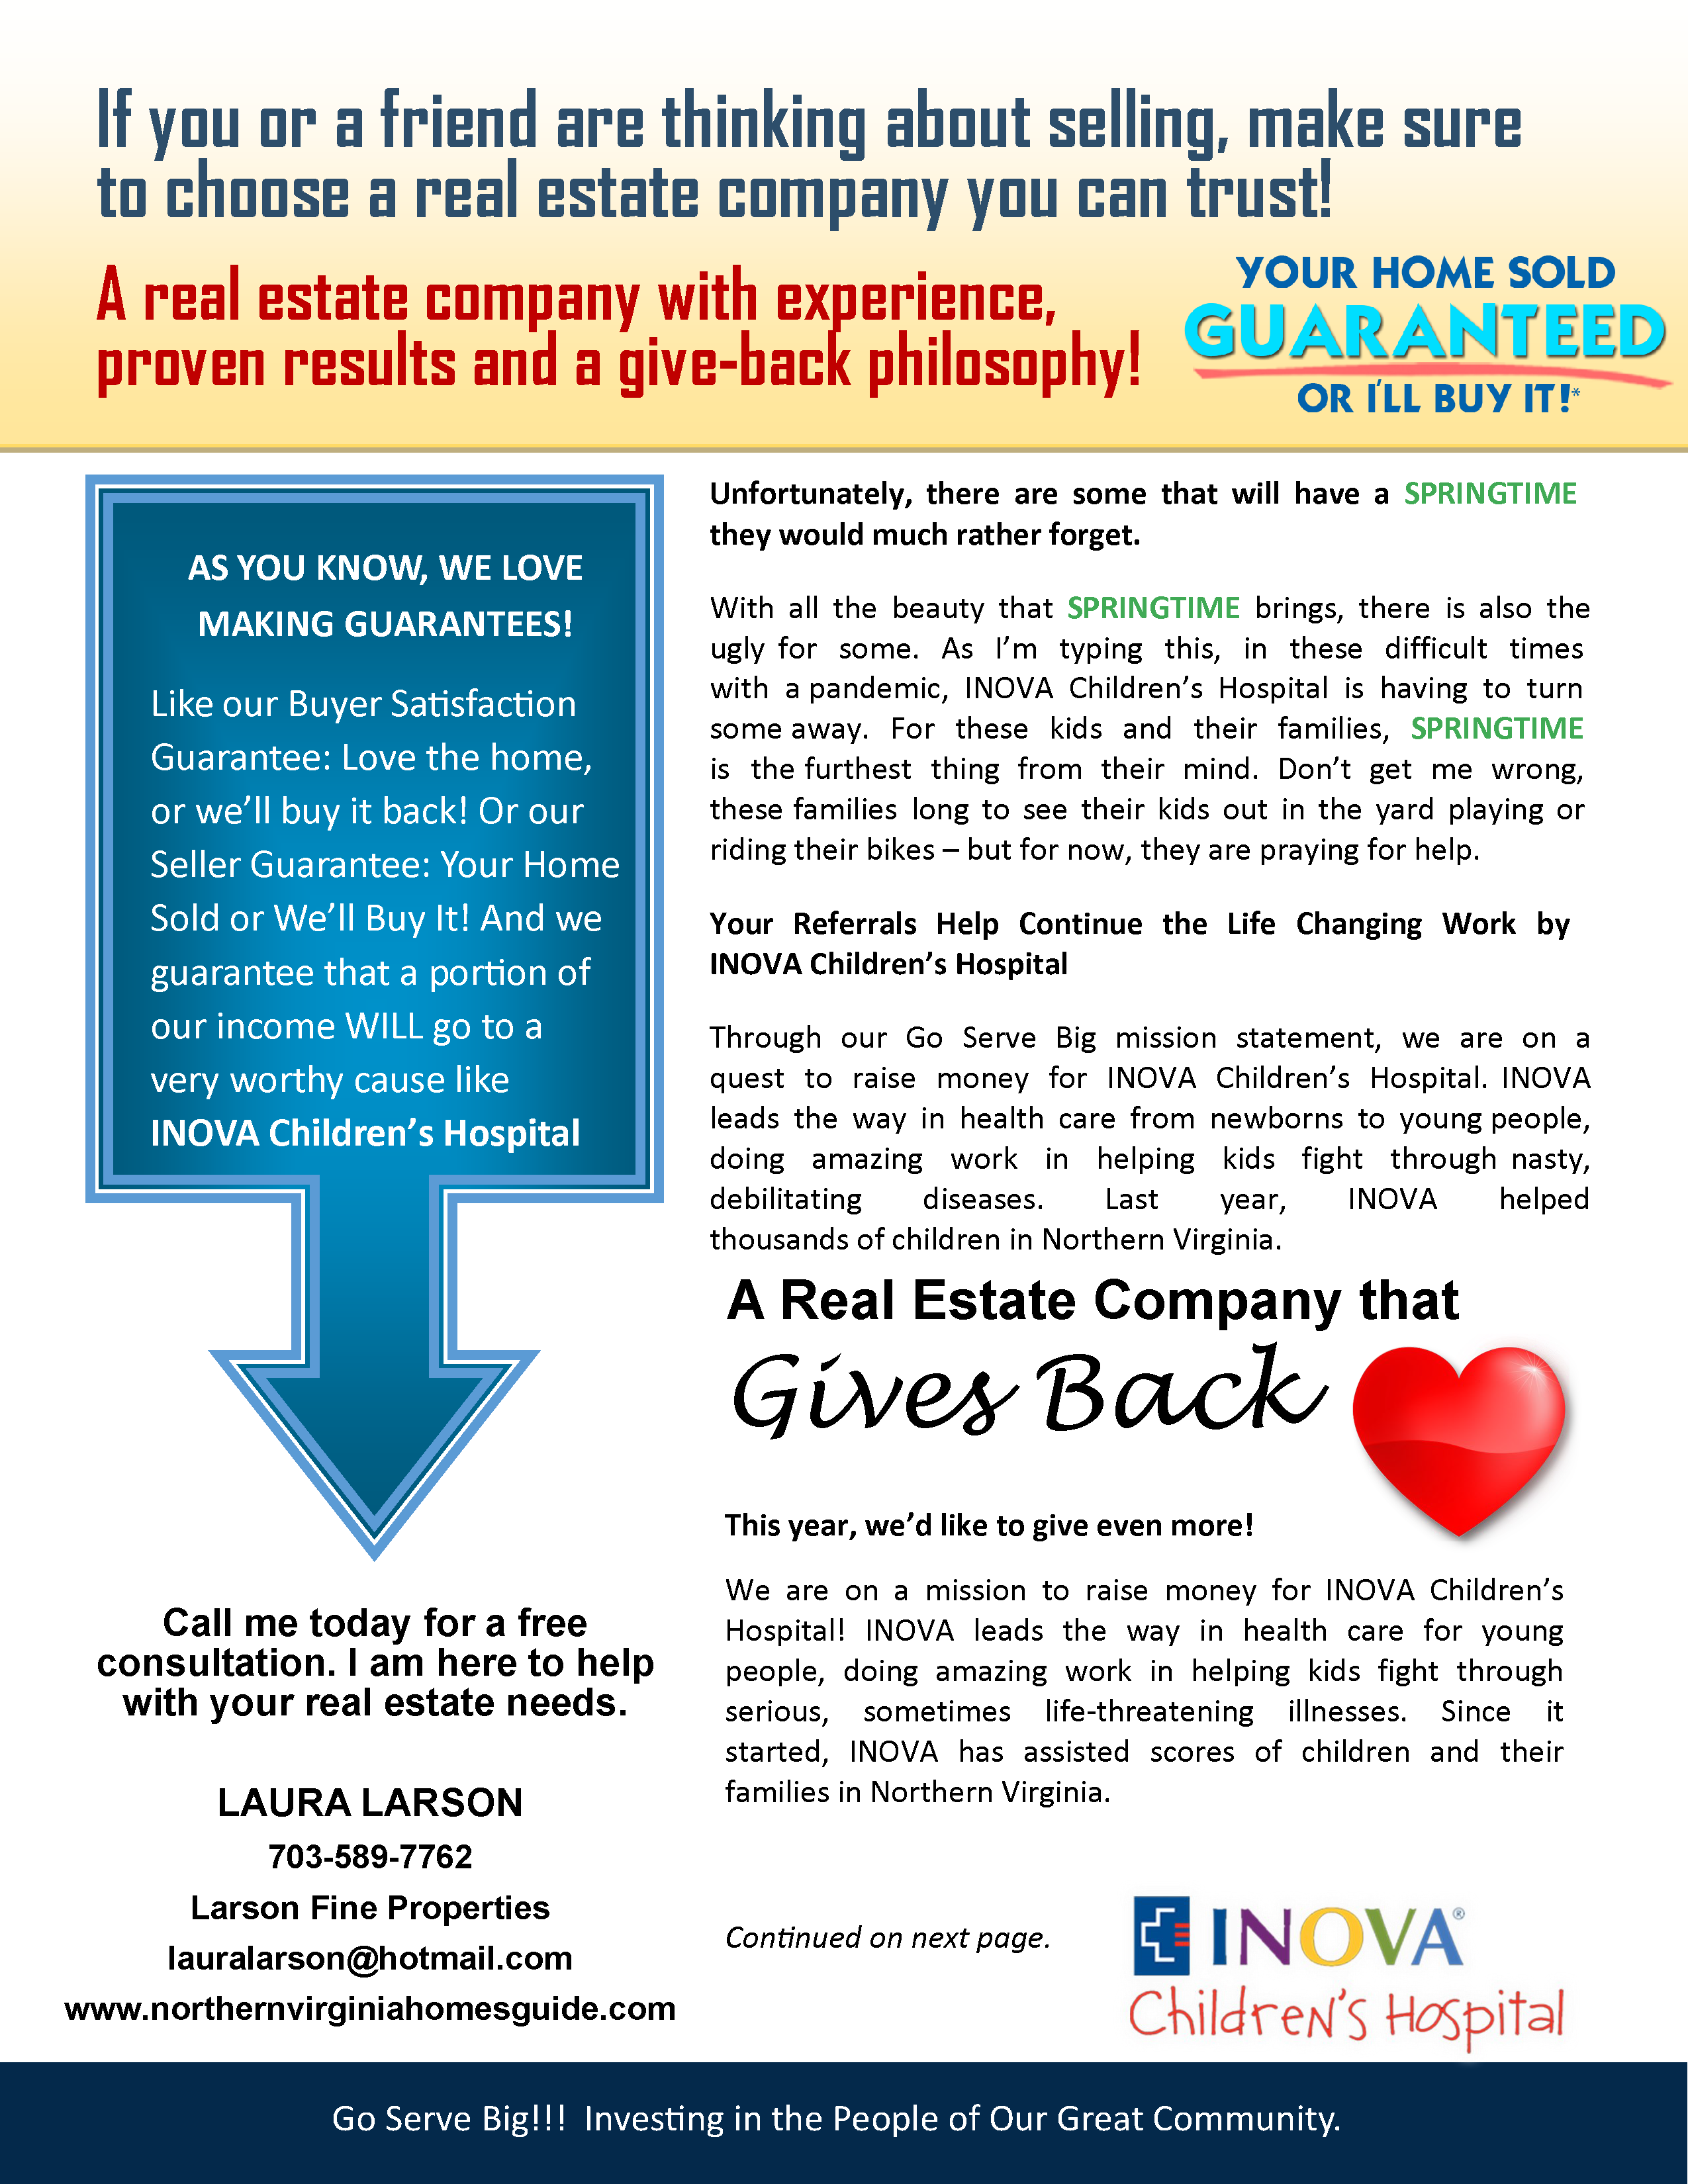 Homeward Bound Newsletter - March (FOR PRINT)_Page_2.png